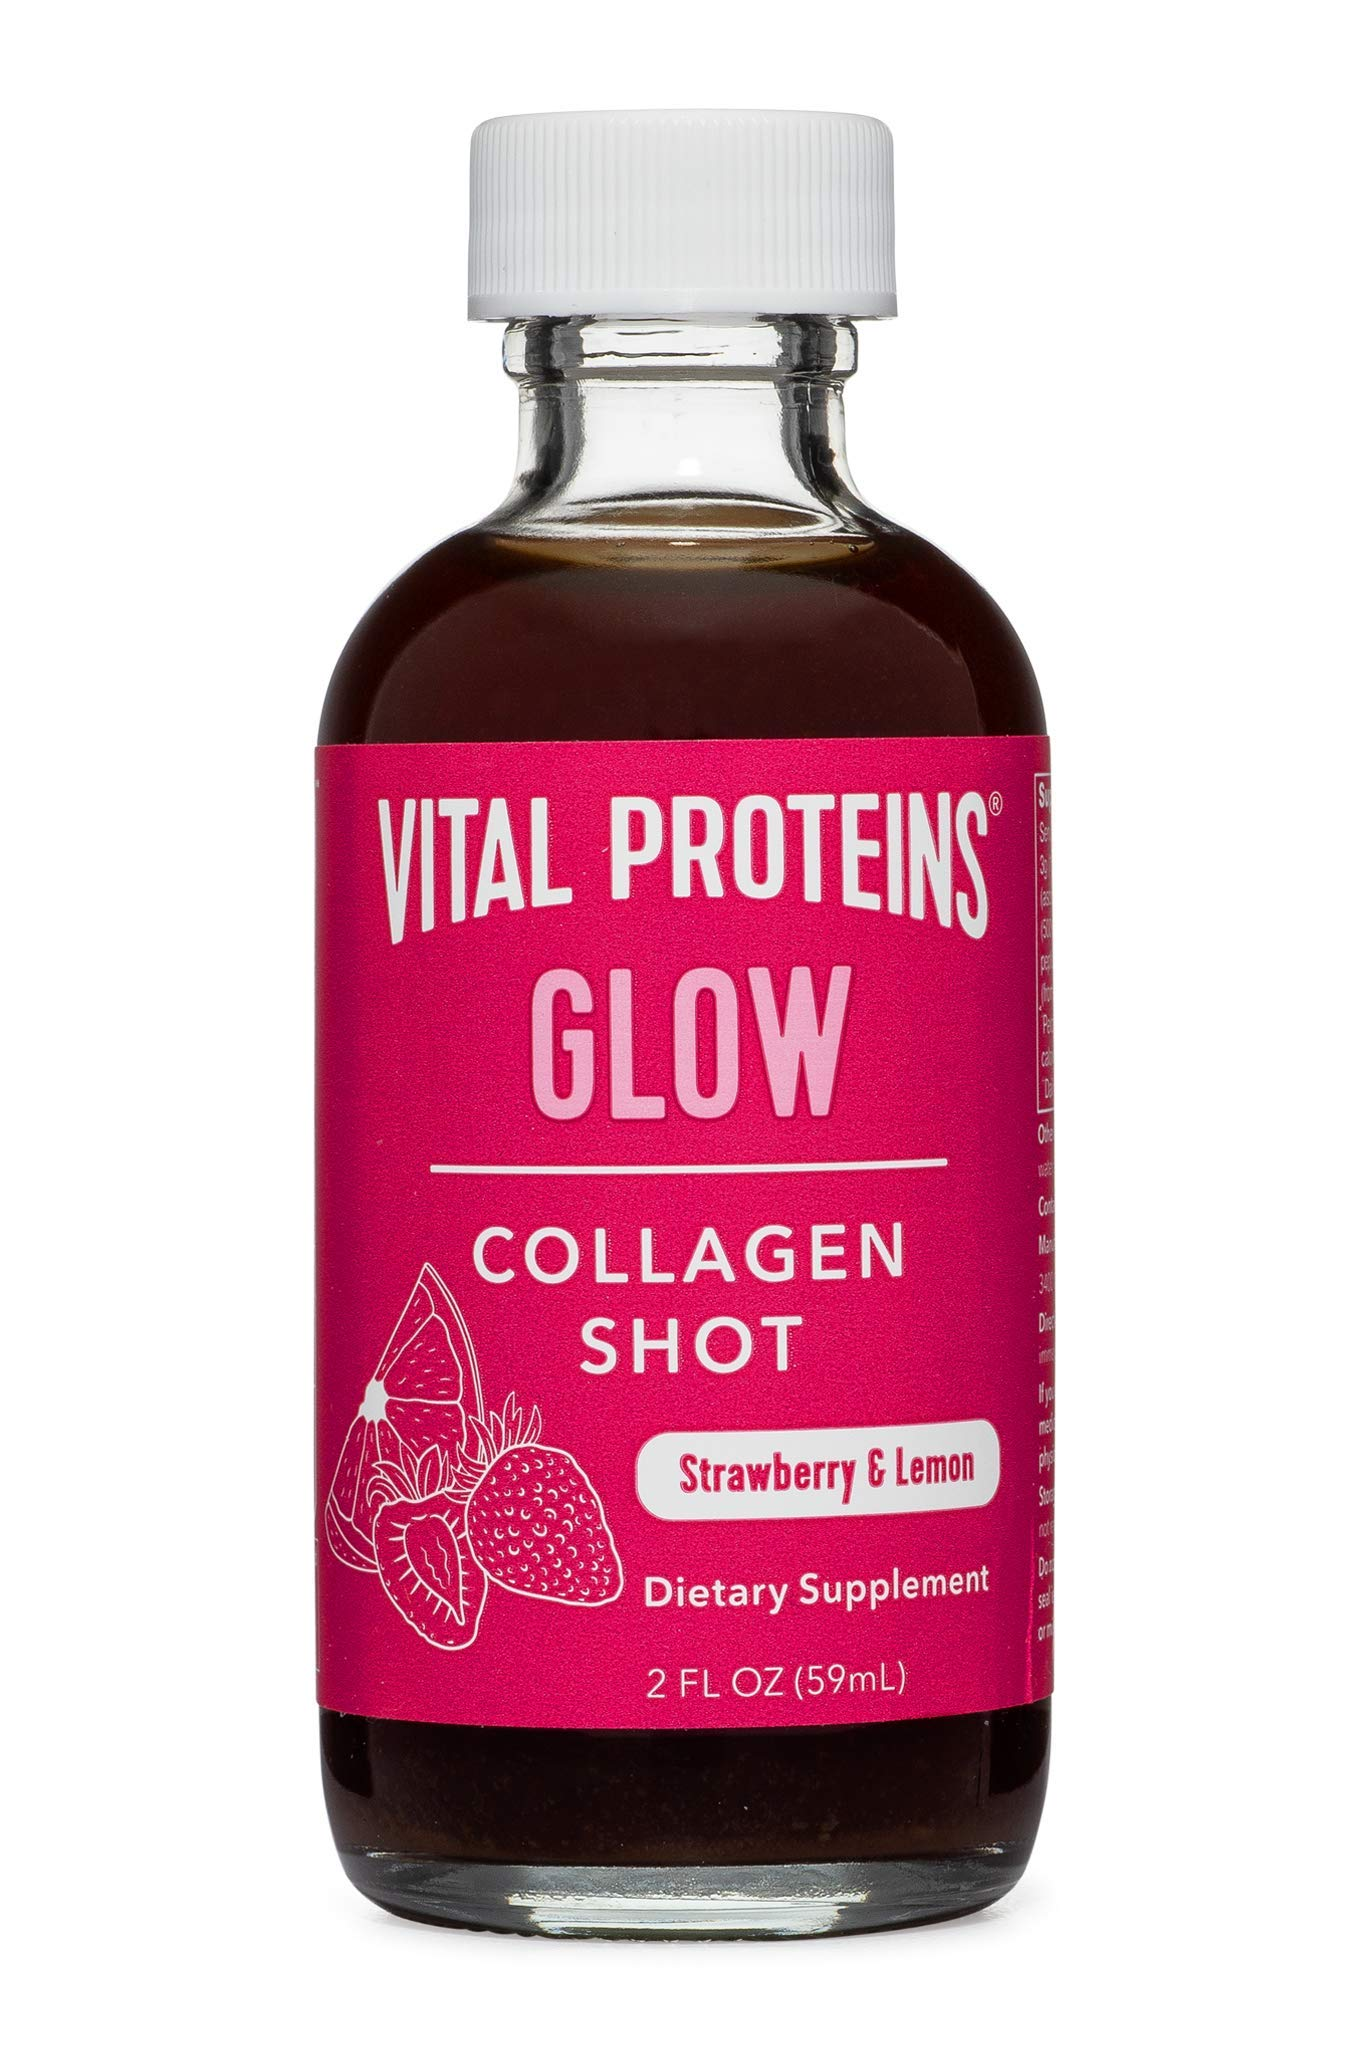 Vital Proteins Collagen Shot - Glow - 12 ct - Hyaluronic Acid, Biotin, and Vitamin C by Vital Proteins (Image #2)